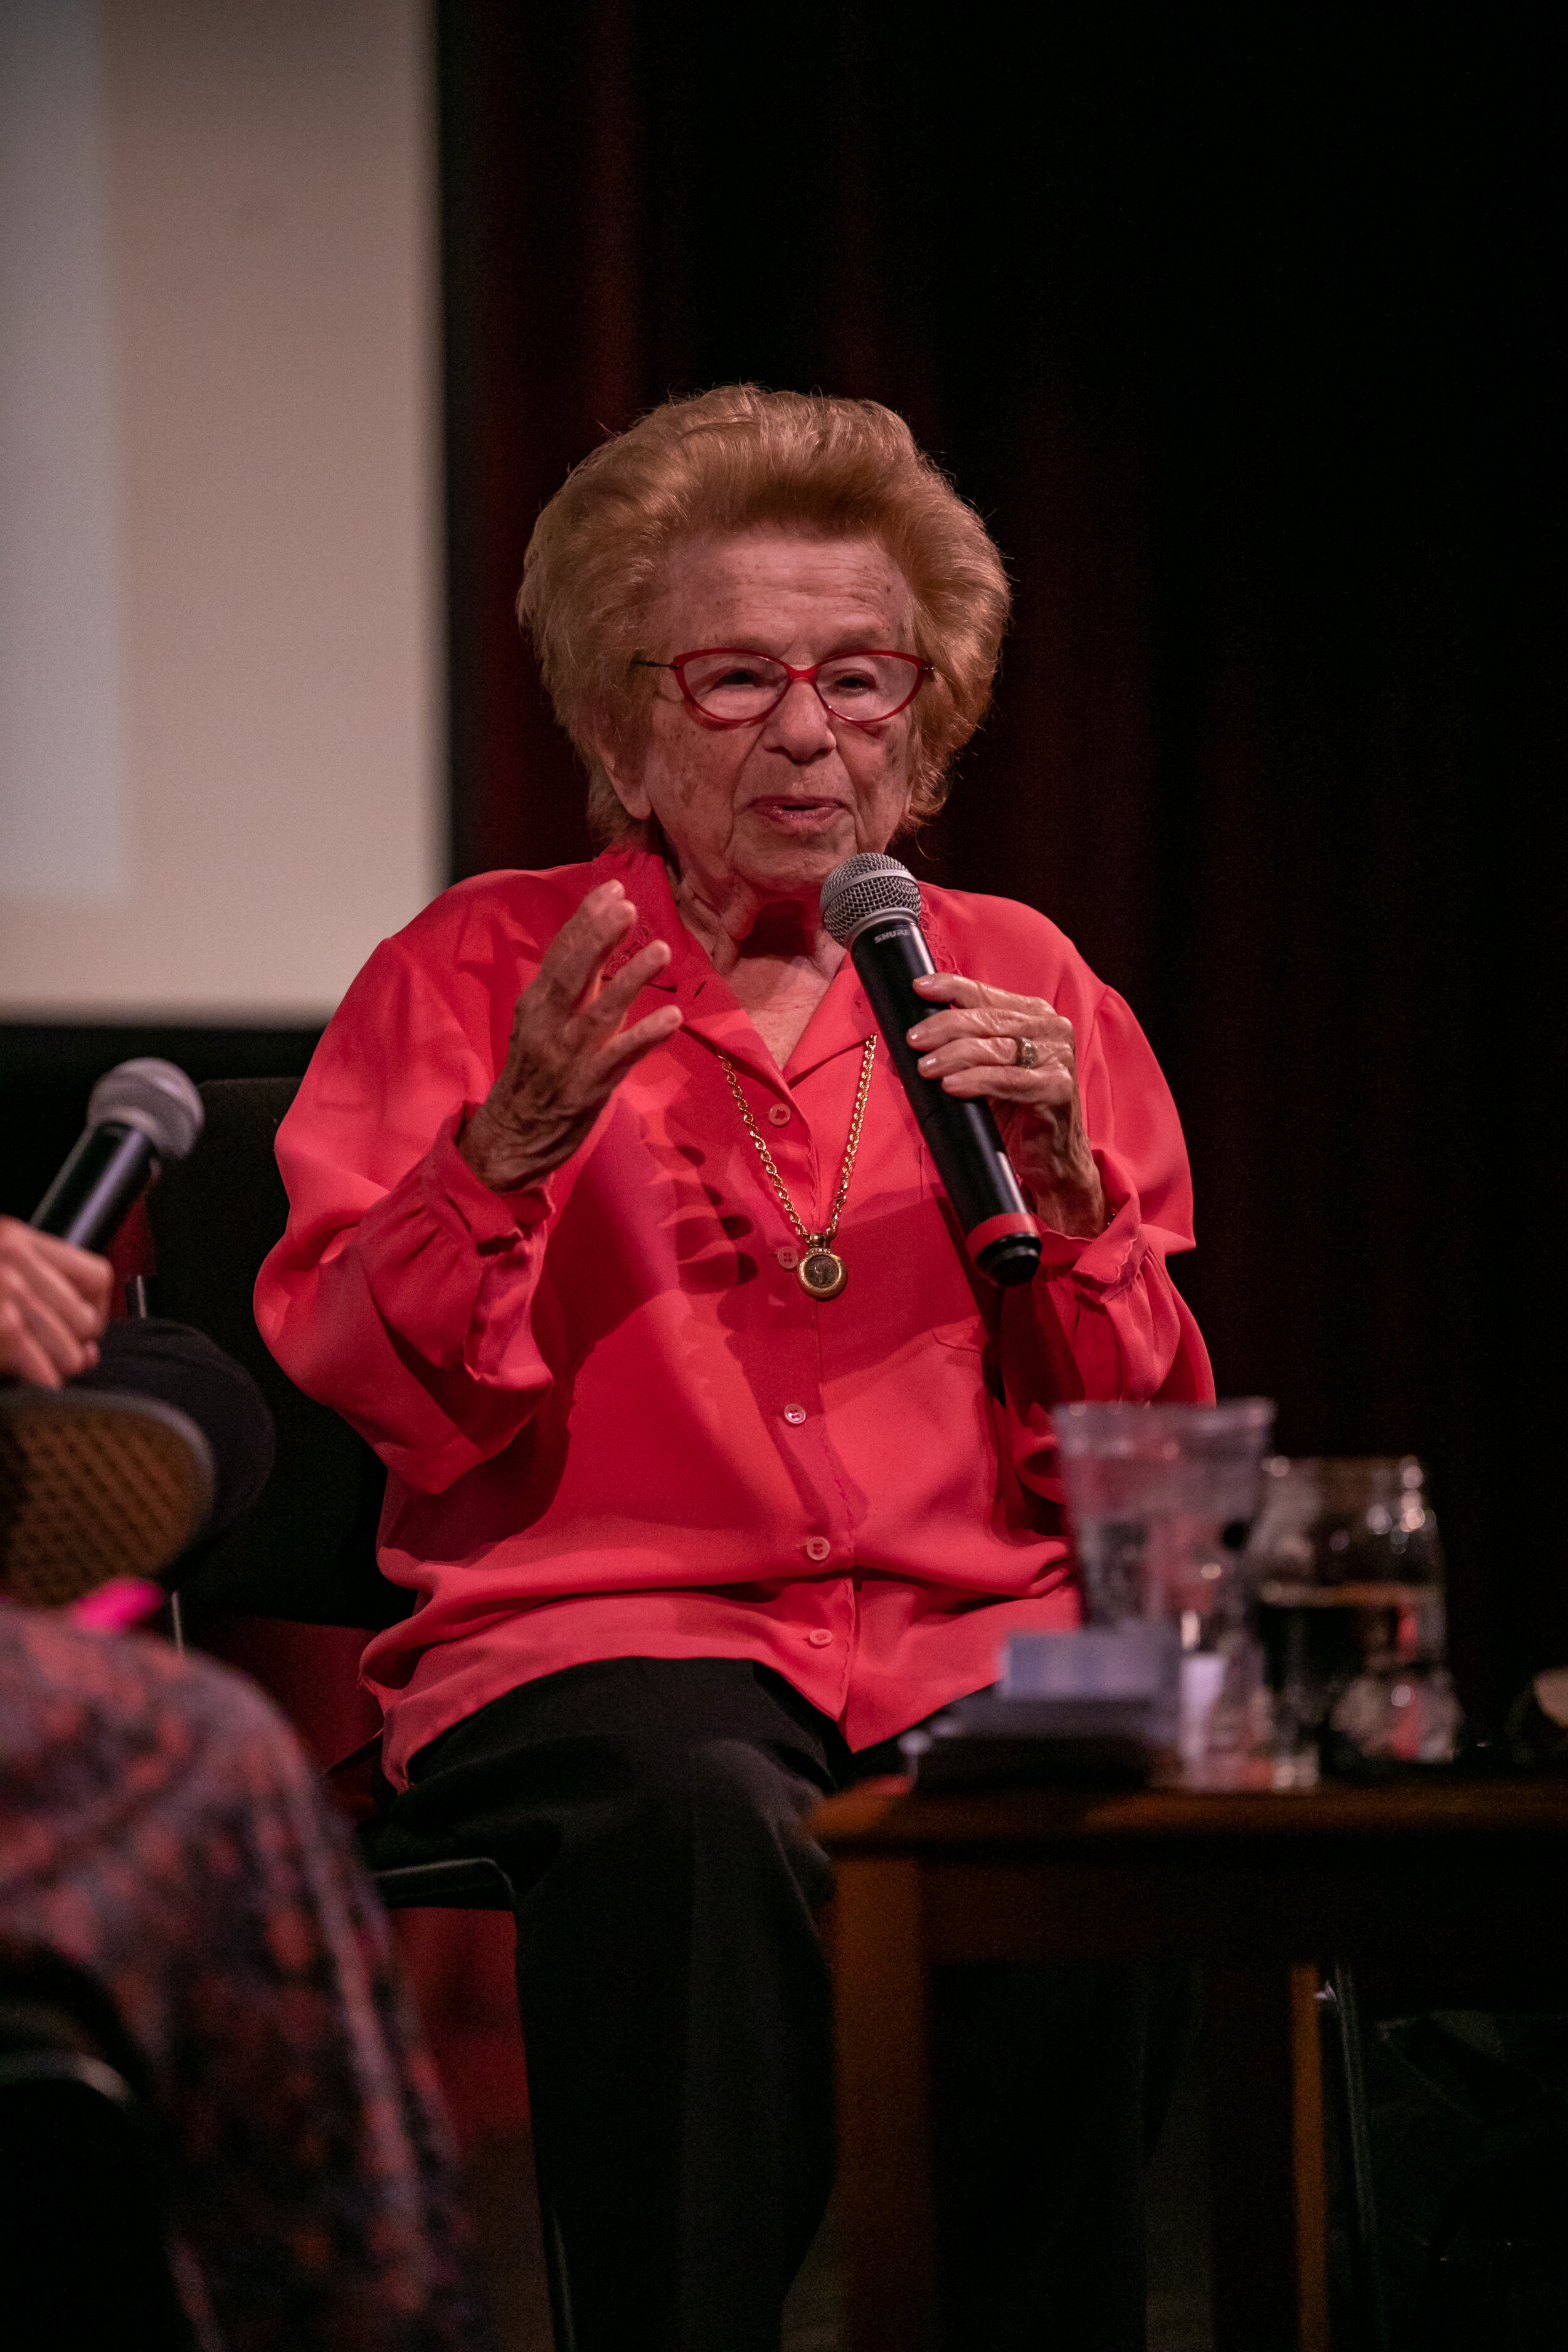 Discussion with Dr. Ruth herself after ASK DR. RUTH. Photo by Joshua Robinson-White.